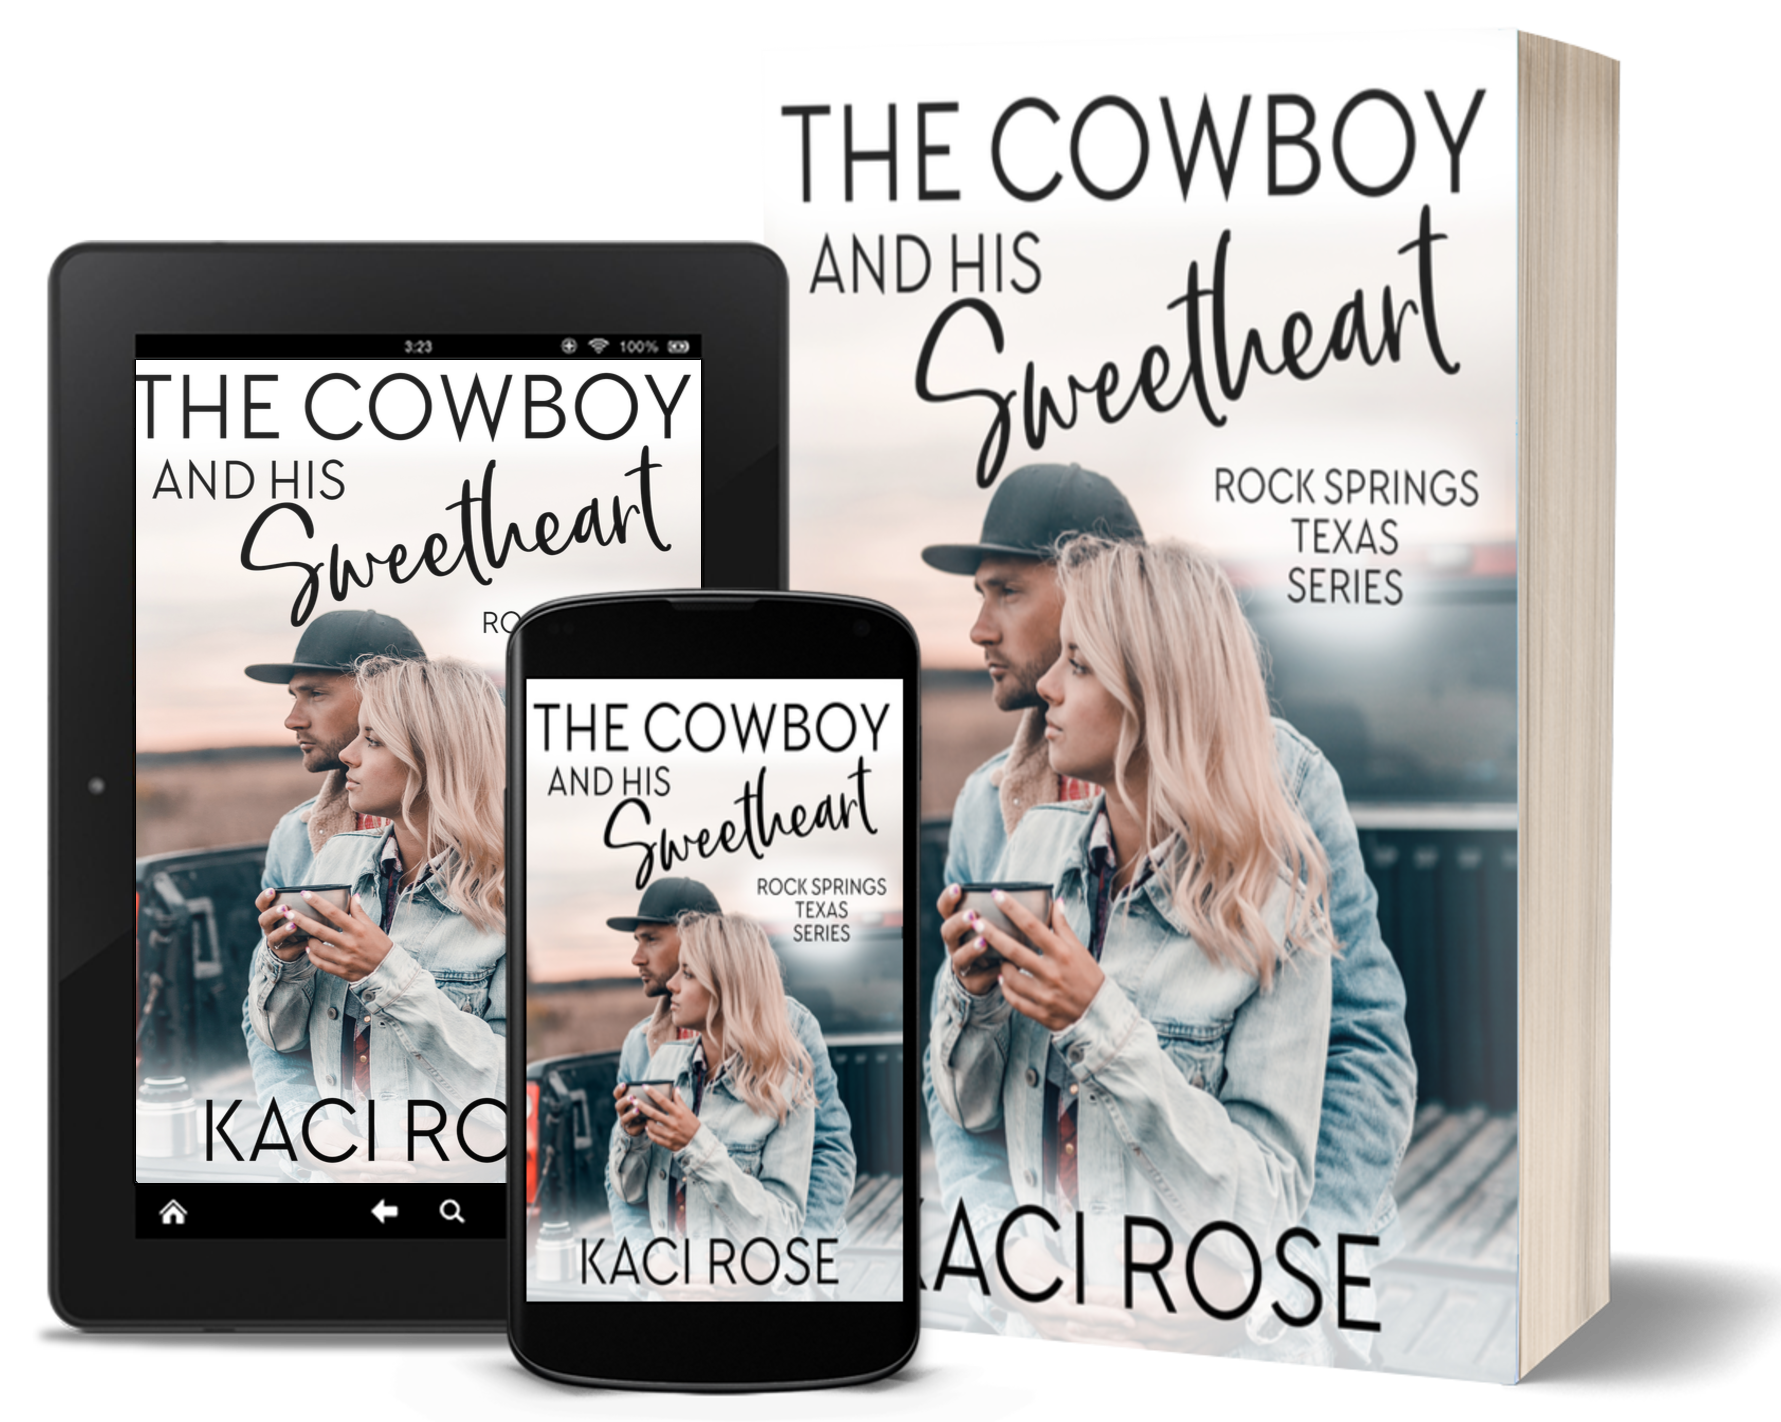 The Cowboy and His Sweetheart - Covers